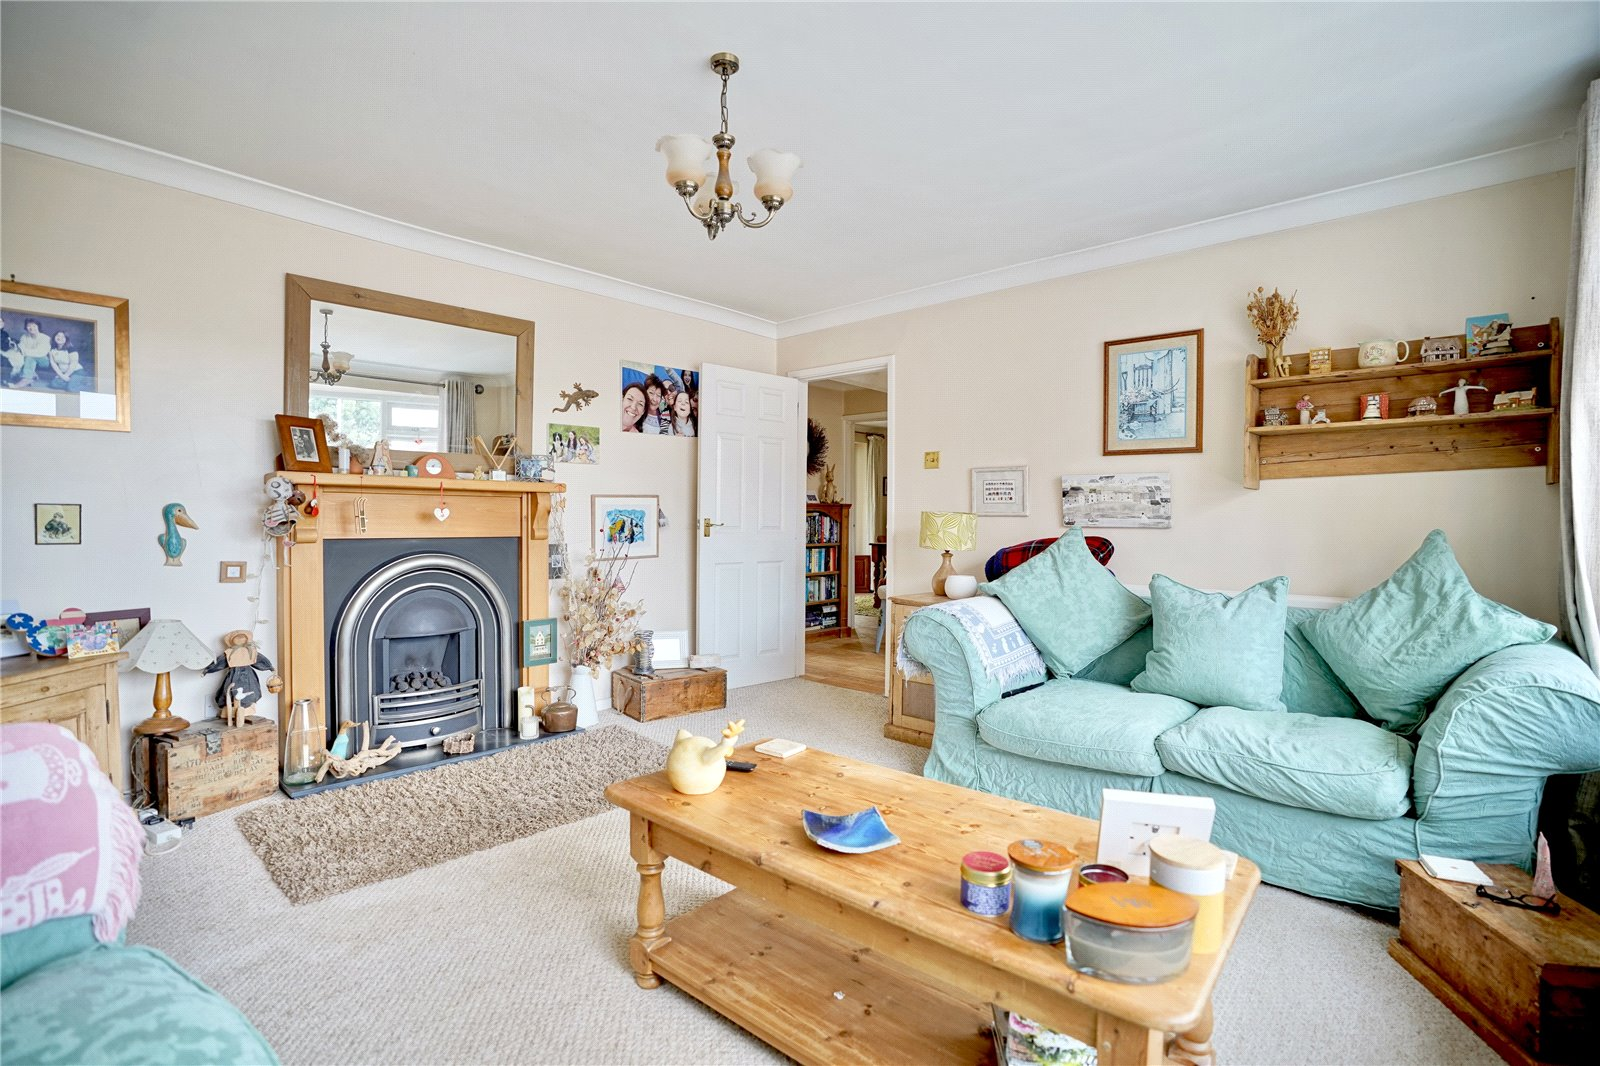 3 bed house for sale in Hemingford Grey, PE28 9BS 1